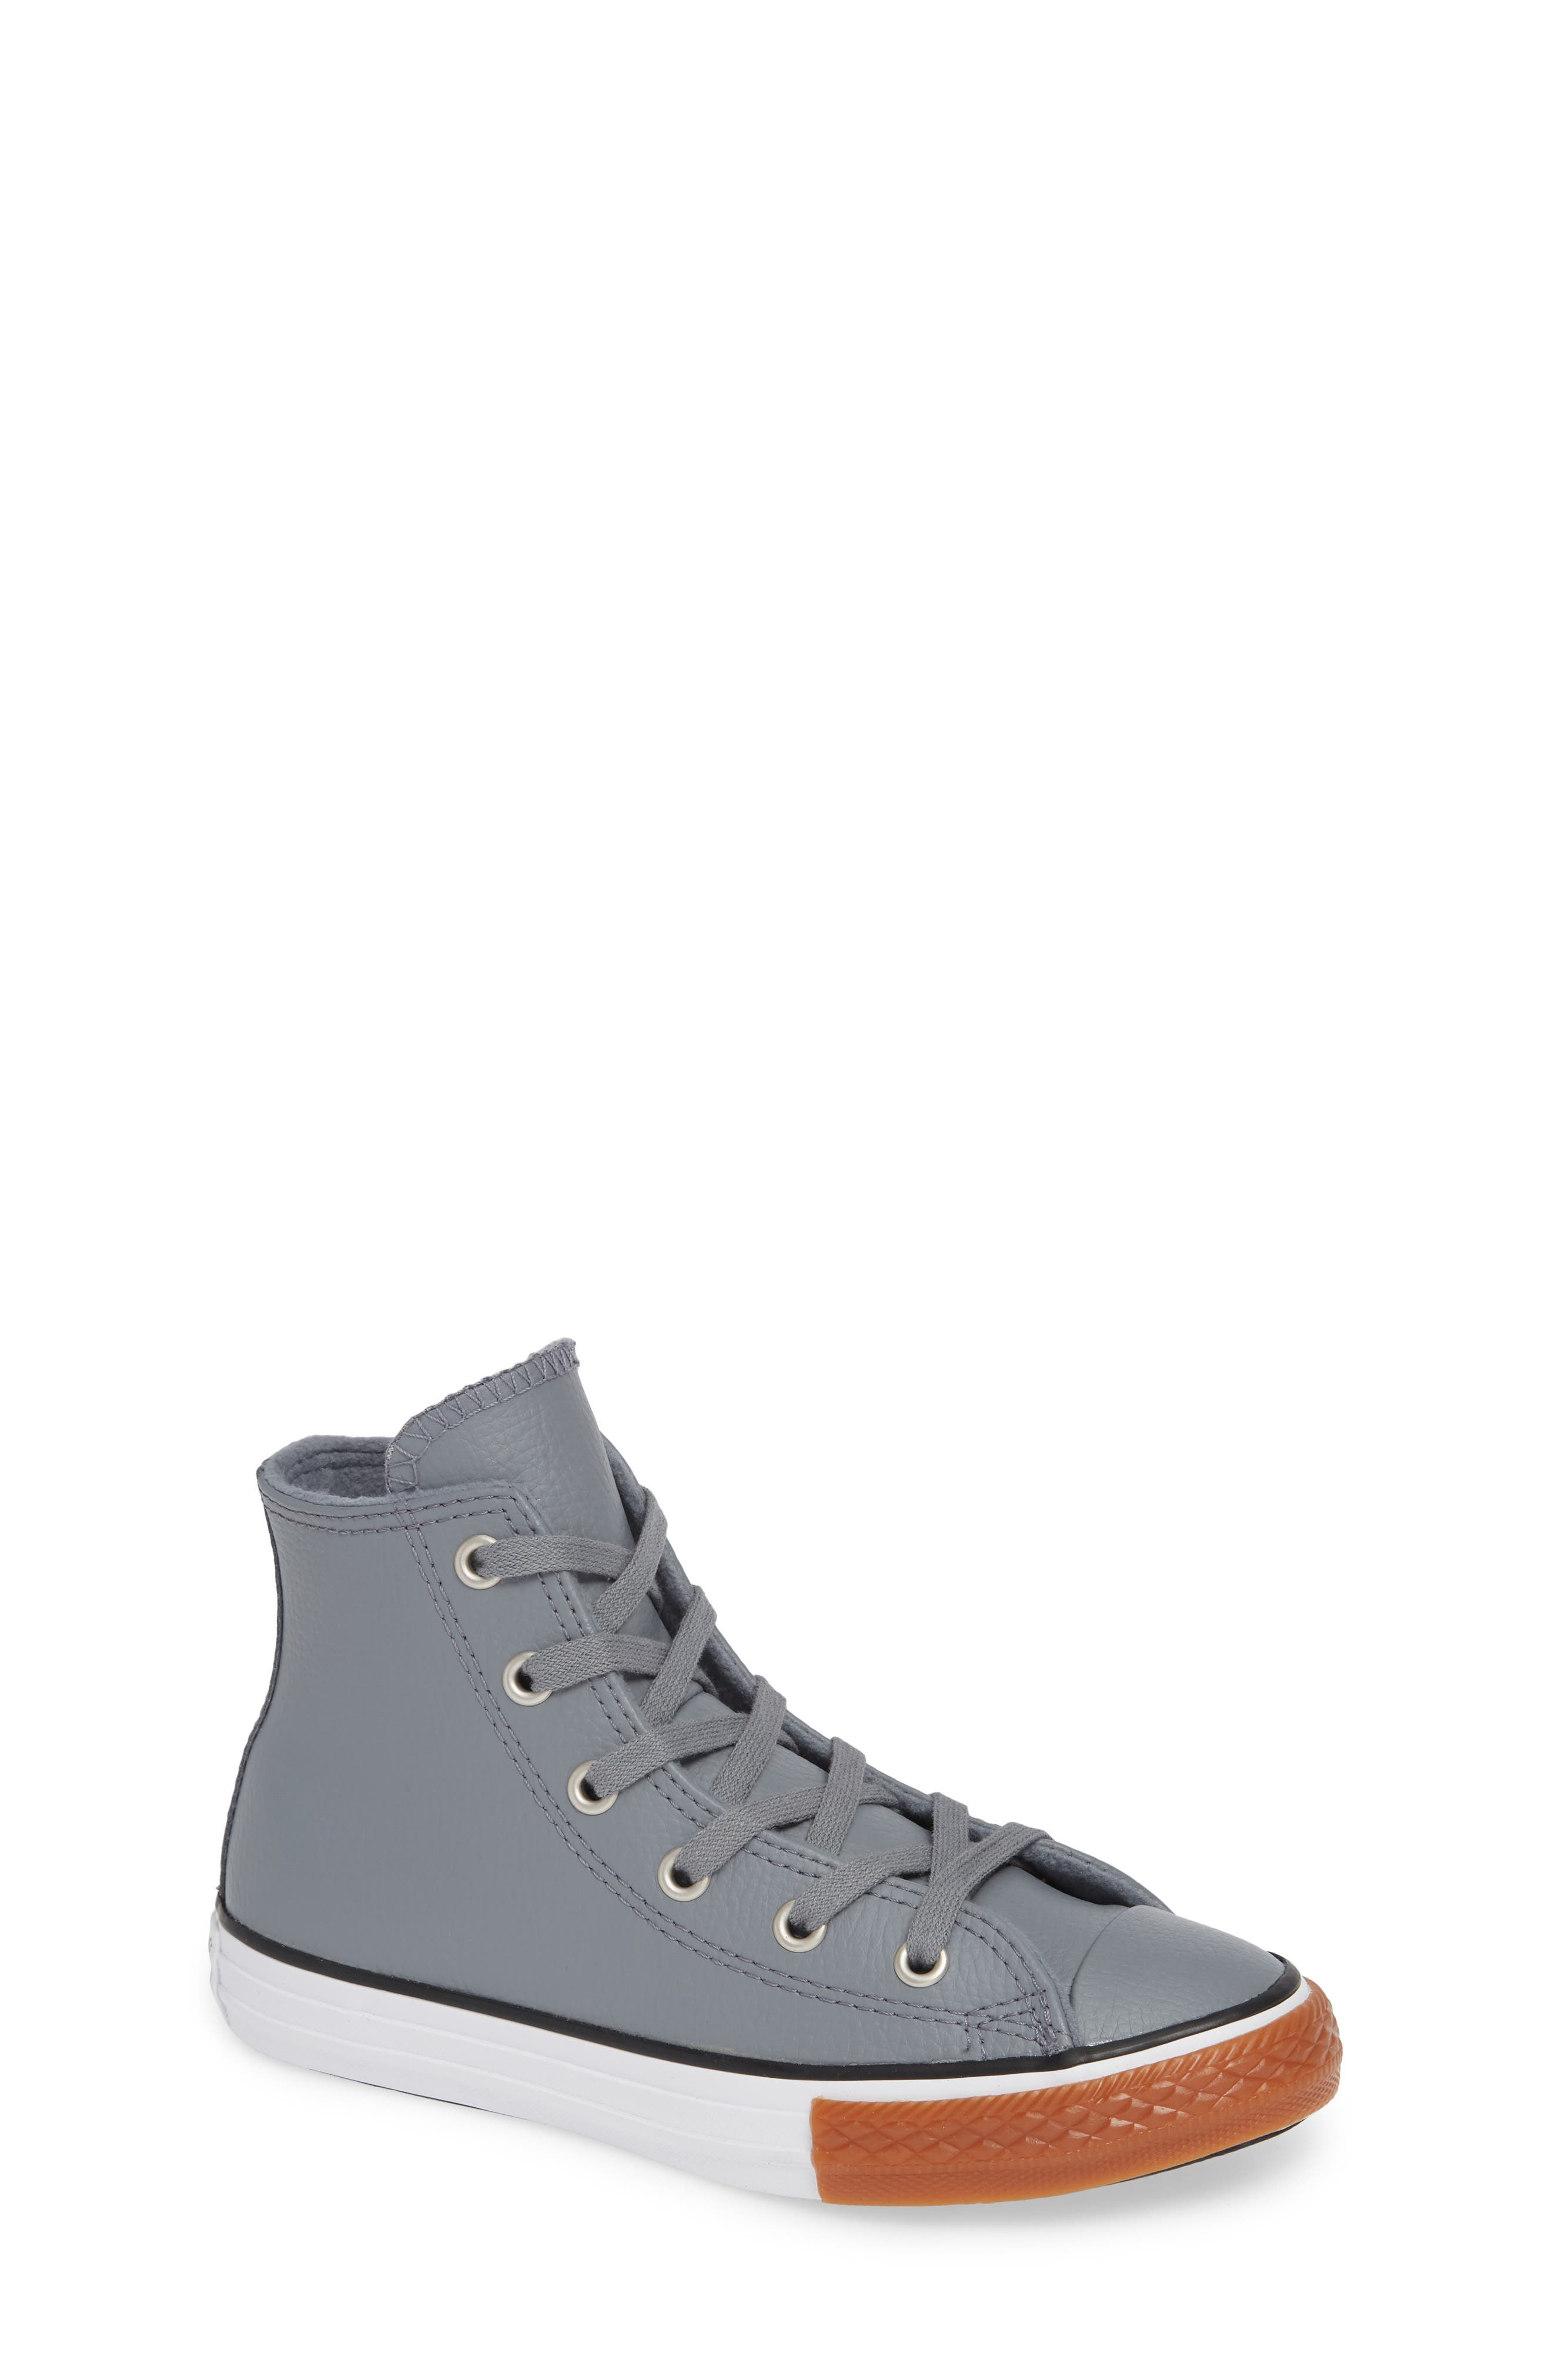 Chuck Taylor<sup>®</sup> All Star<sup>®</sup> No Gum In Class Leather High Top Sneaker,                             Main thumbnail 1, color,                             039